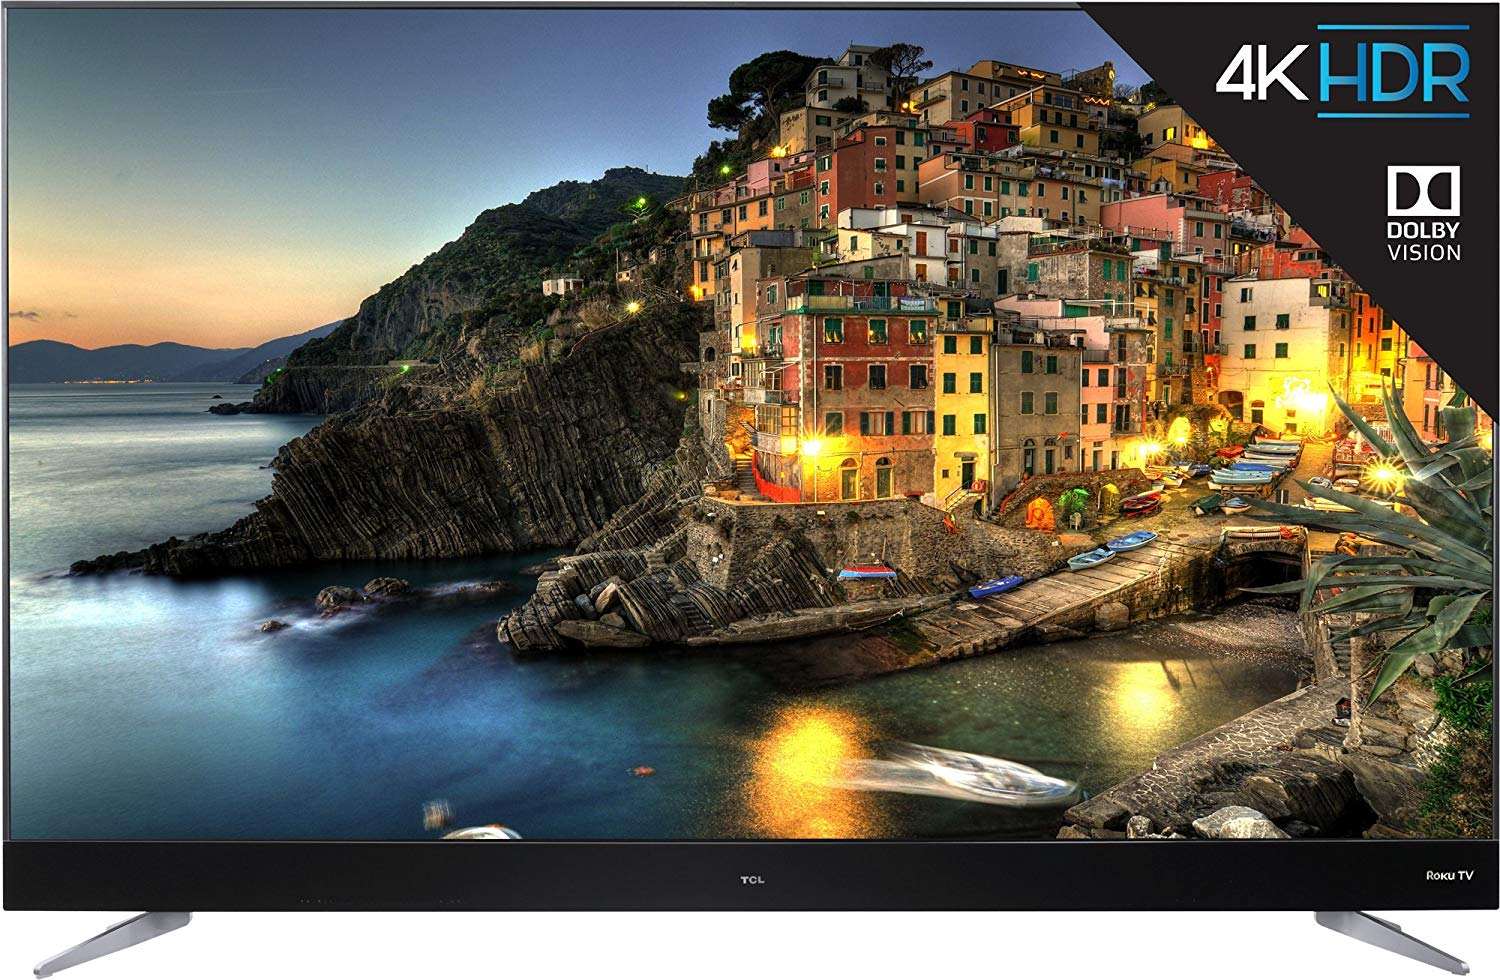 An image of TCL 55C807 55-Inch HDR 4K LED 120Hz TV